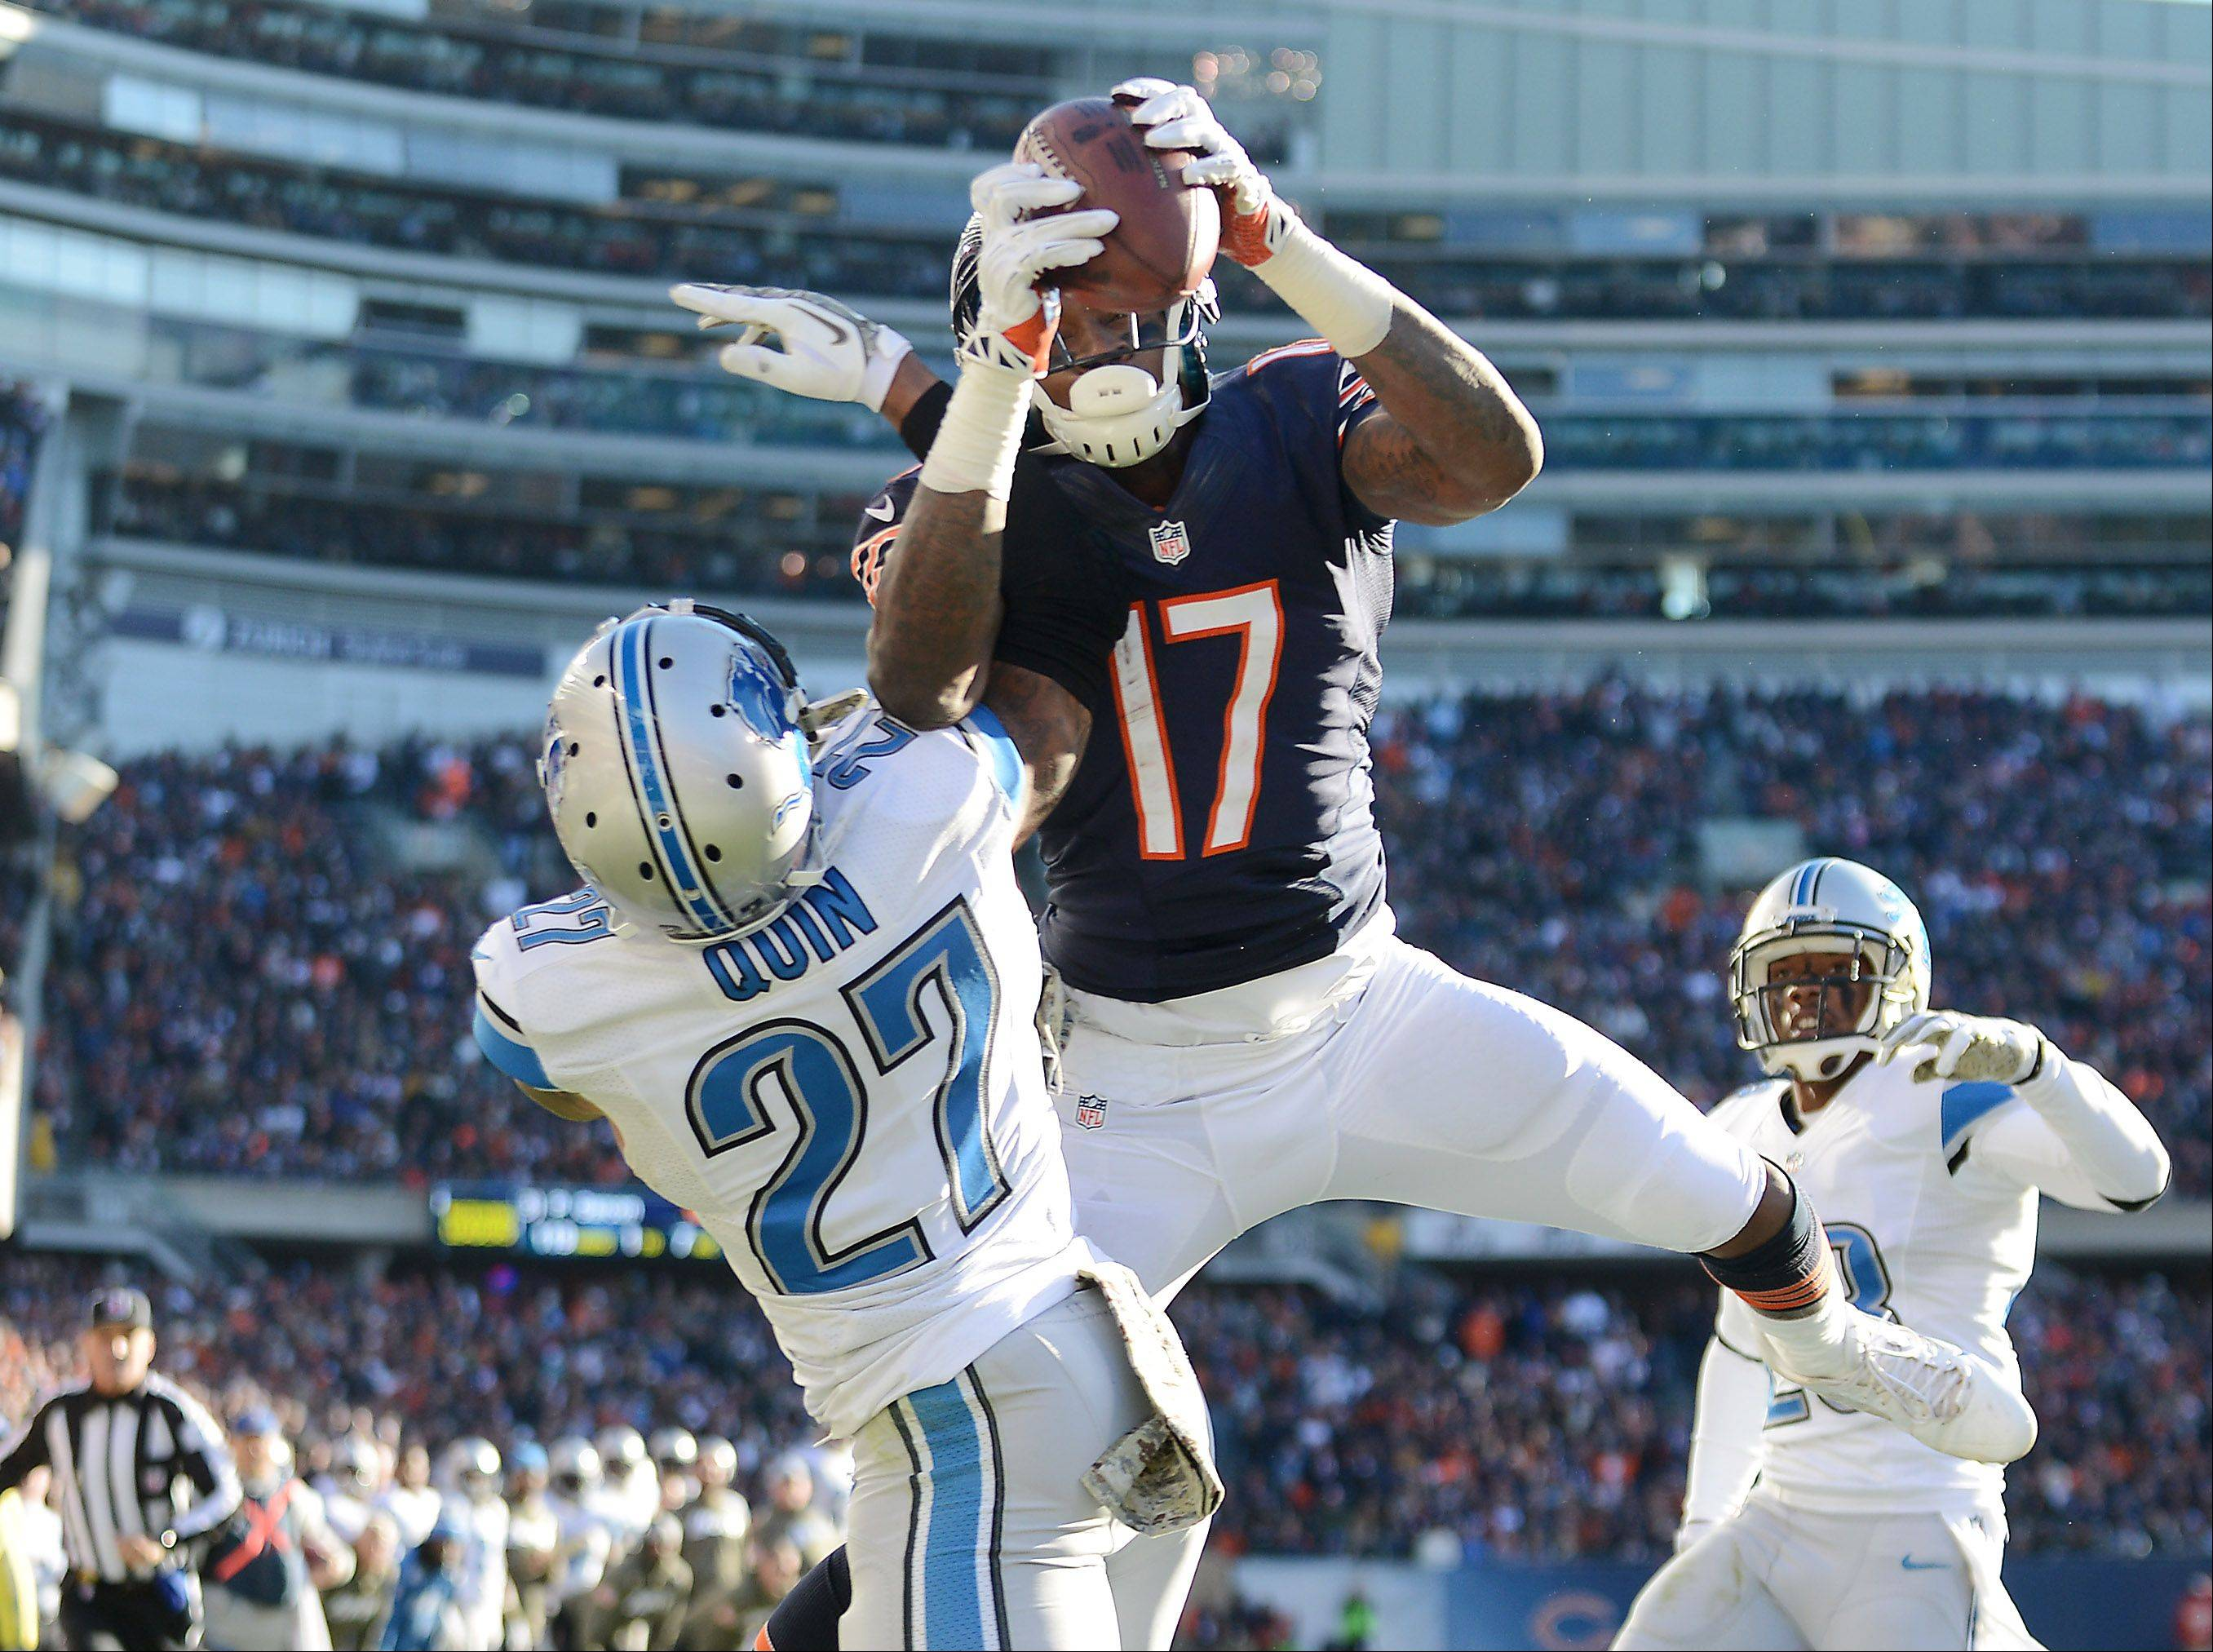 Chicago Bears wide receiver Alshon Jeffery (17) comes up with an apparent touchdown catch while battling Detroit Lions strong safety Glover Quin (27) during the fourth quarter of Sunday's game in Chicago. The play was overturned on review.